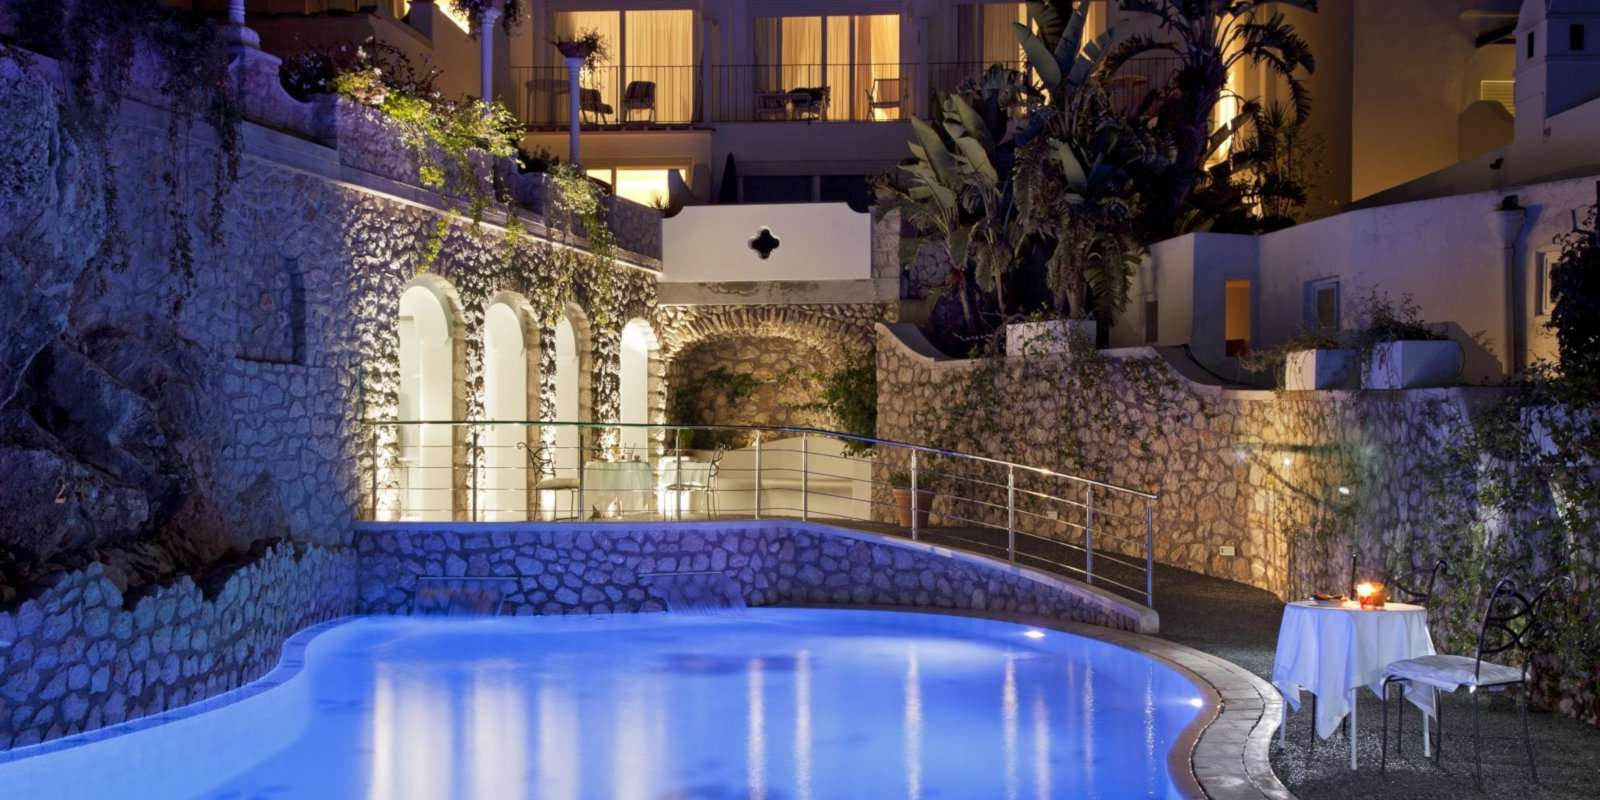 Gay travel to the Amalfi Coast - Have a romantic dinner next to the pool at Hotel La Floridiana on Capri Island.